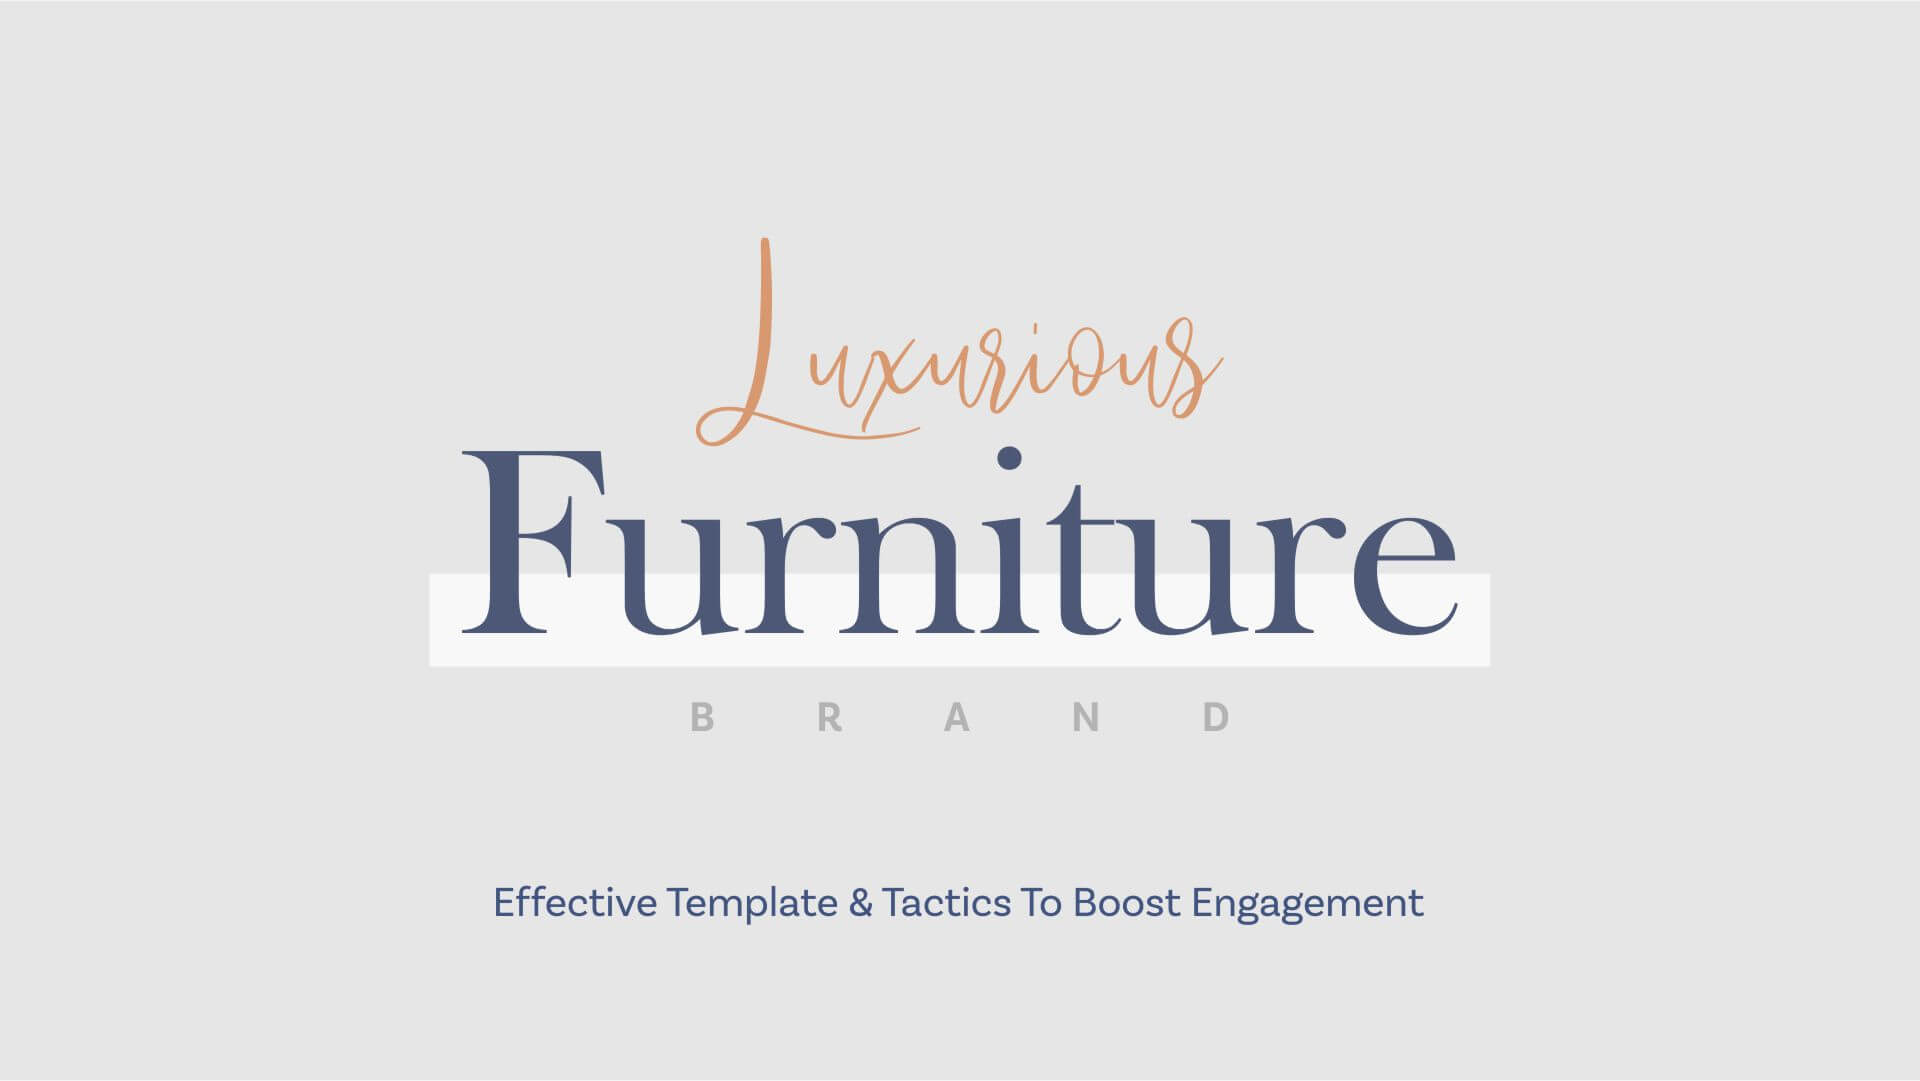 Social Media Marketing For Luxurious Furniture Brand To Win High End Customers 01